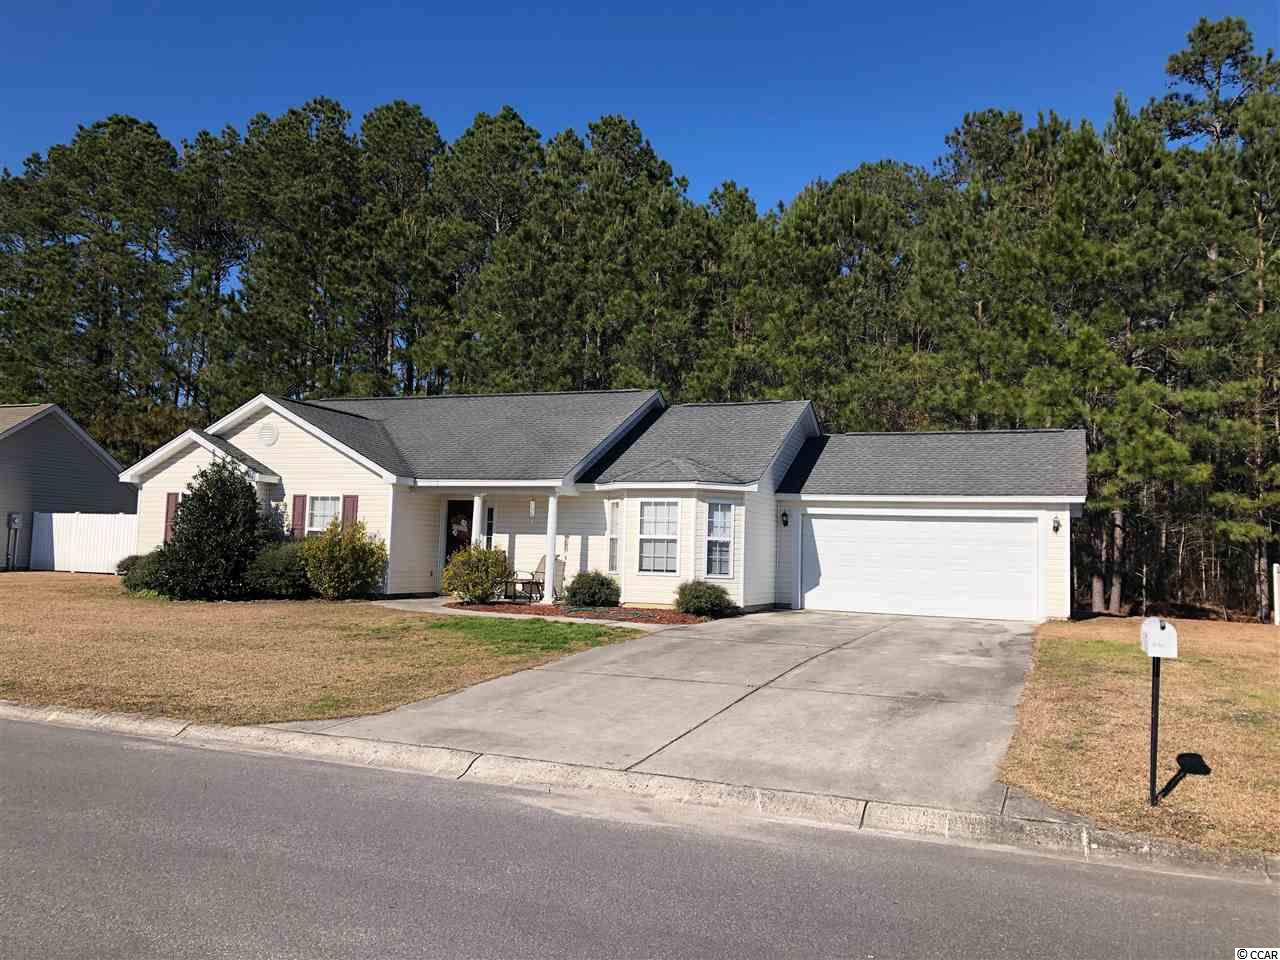 Quiet neighborhood located off of 707 in Murrells Inlet.  Short drive to grocery store, beach, post office and other attractions.  Permanent residence or use for annual rental.  Presently leased.